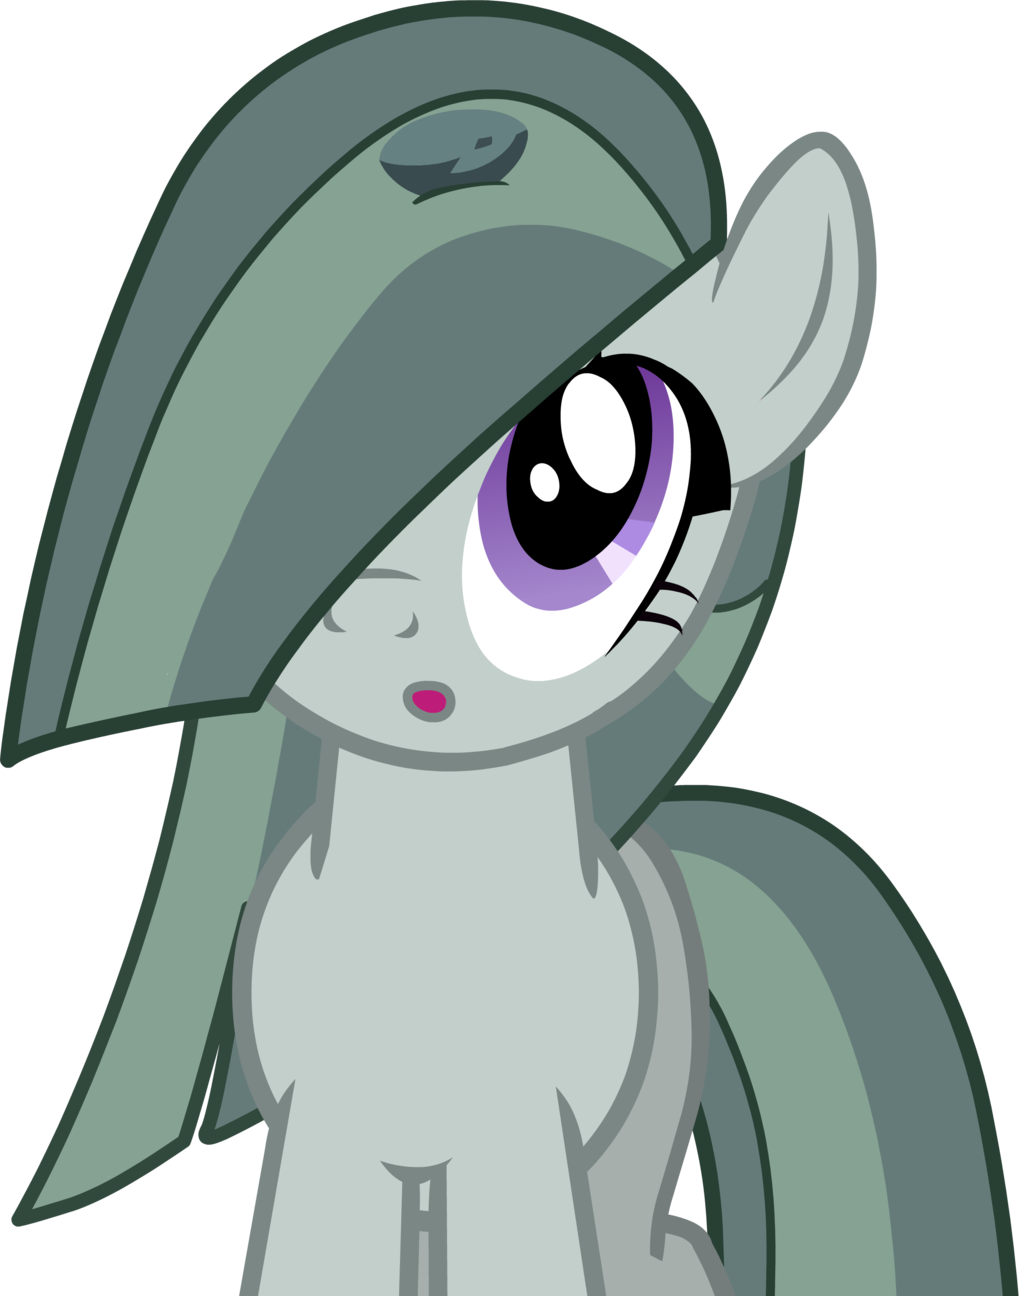 Boulder vector my little pony. Wants to play by